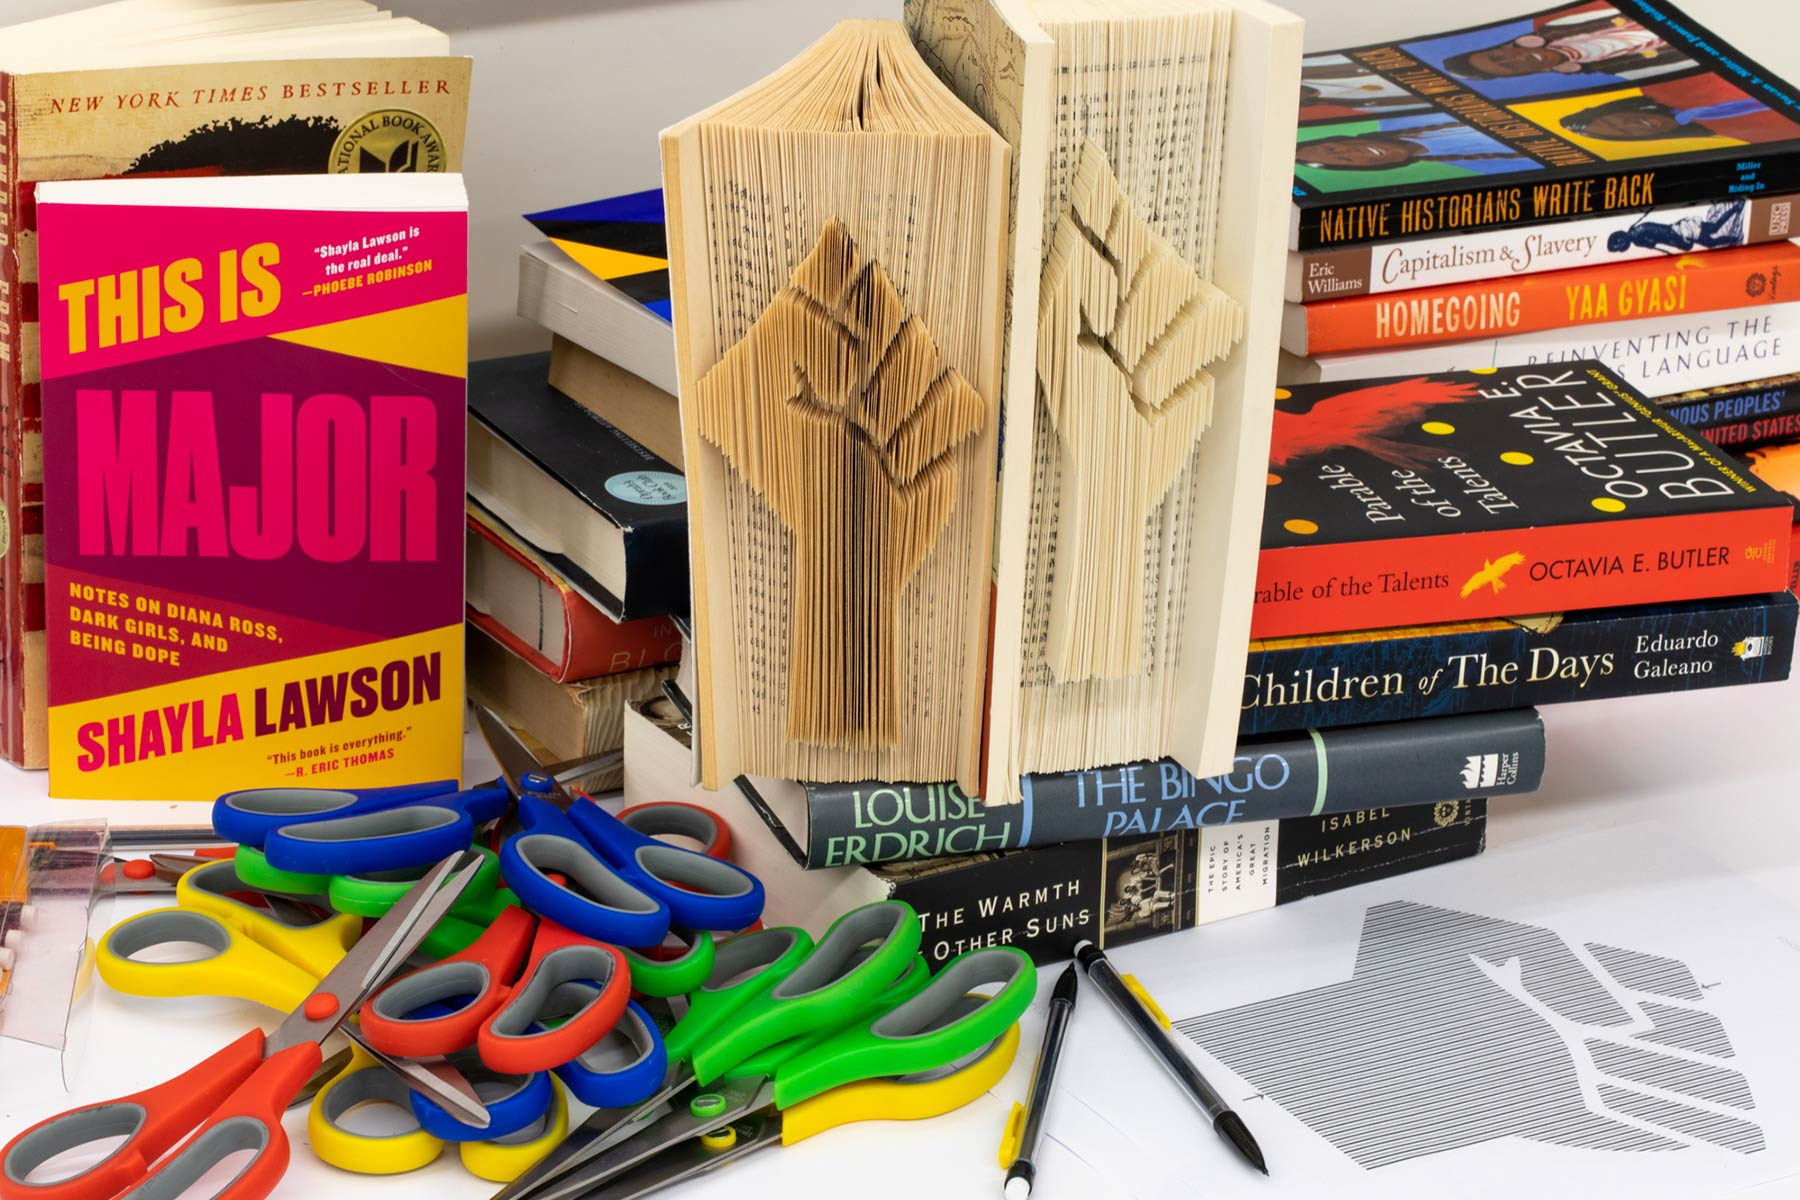 books and supplies for a book sculpting project